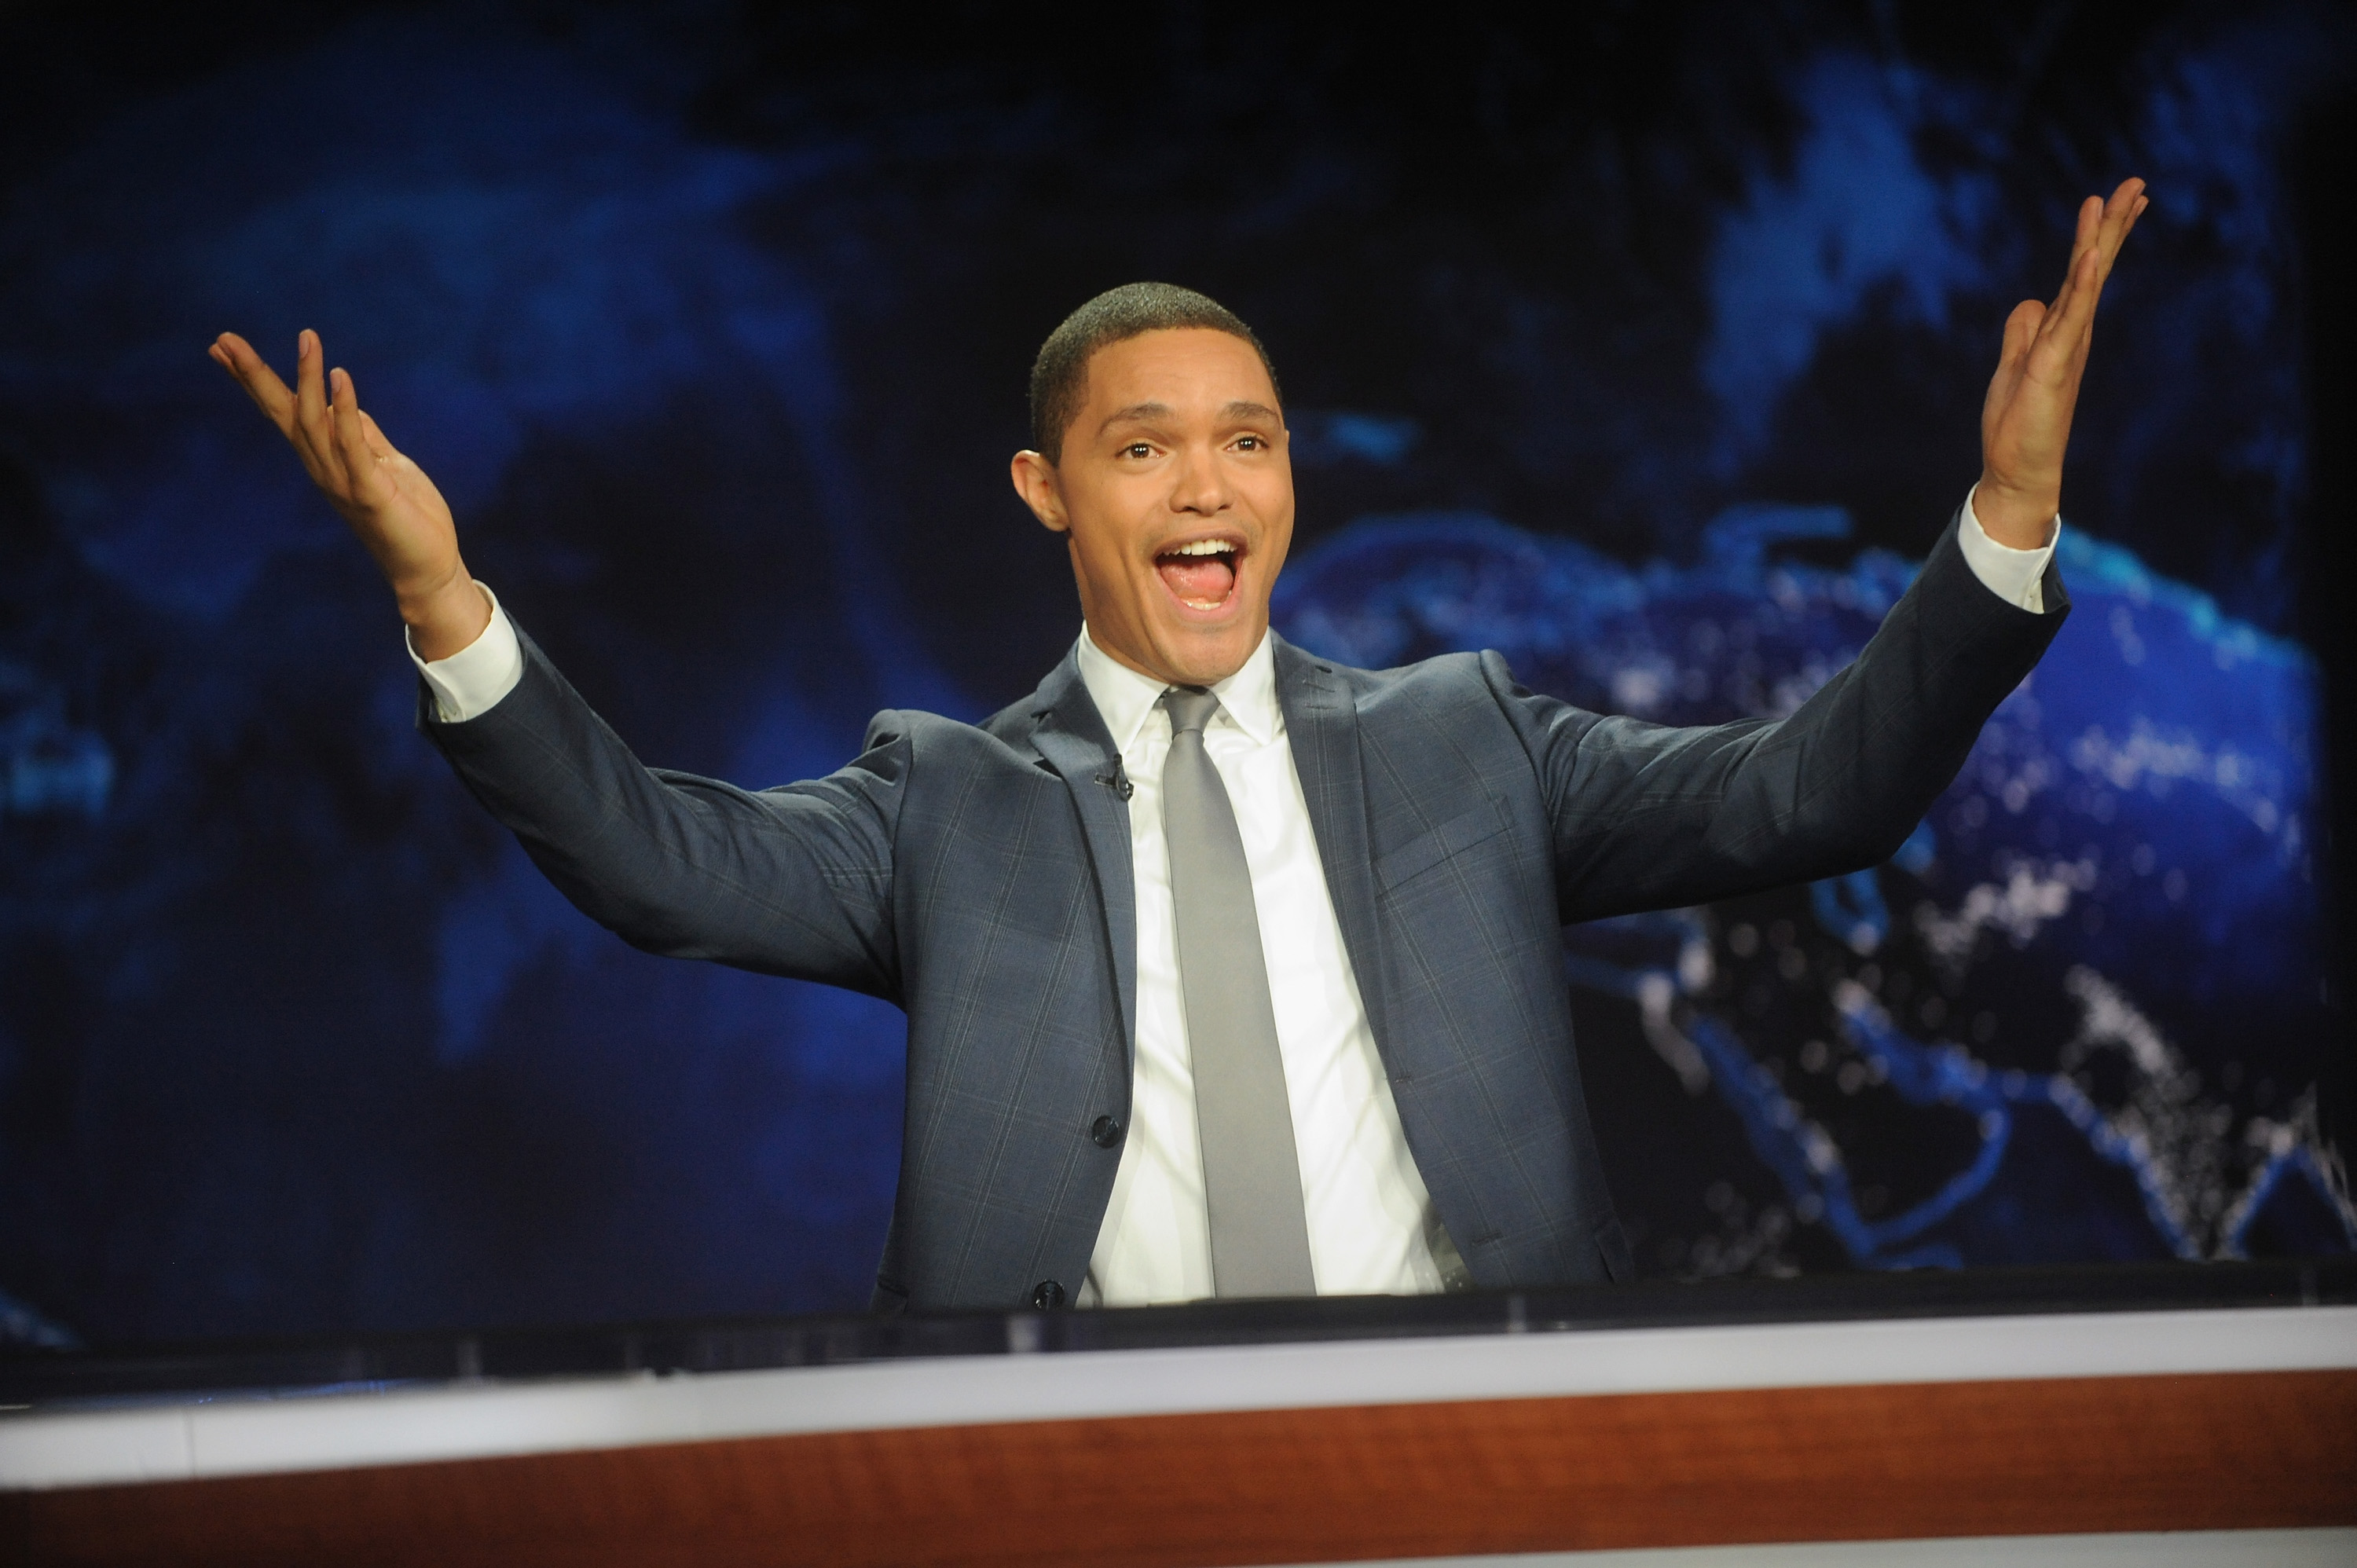 Hidden the daily show with trevor noah promotional videos can brad barketgetty images entertainmentgetty images biocorpaavc Choice Image